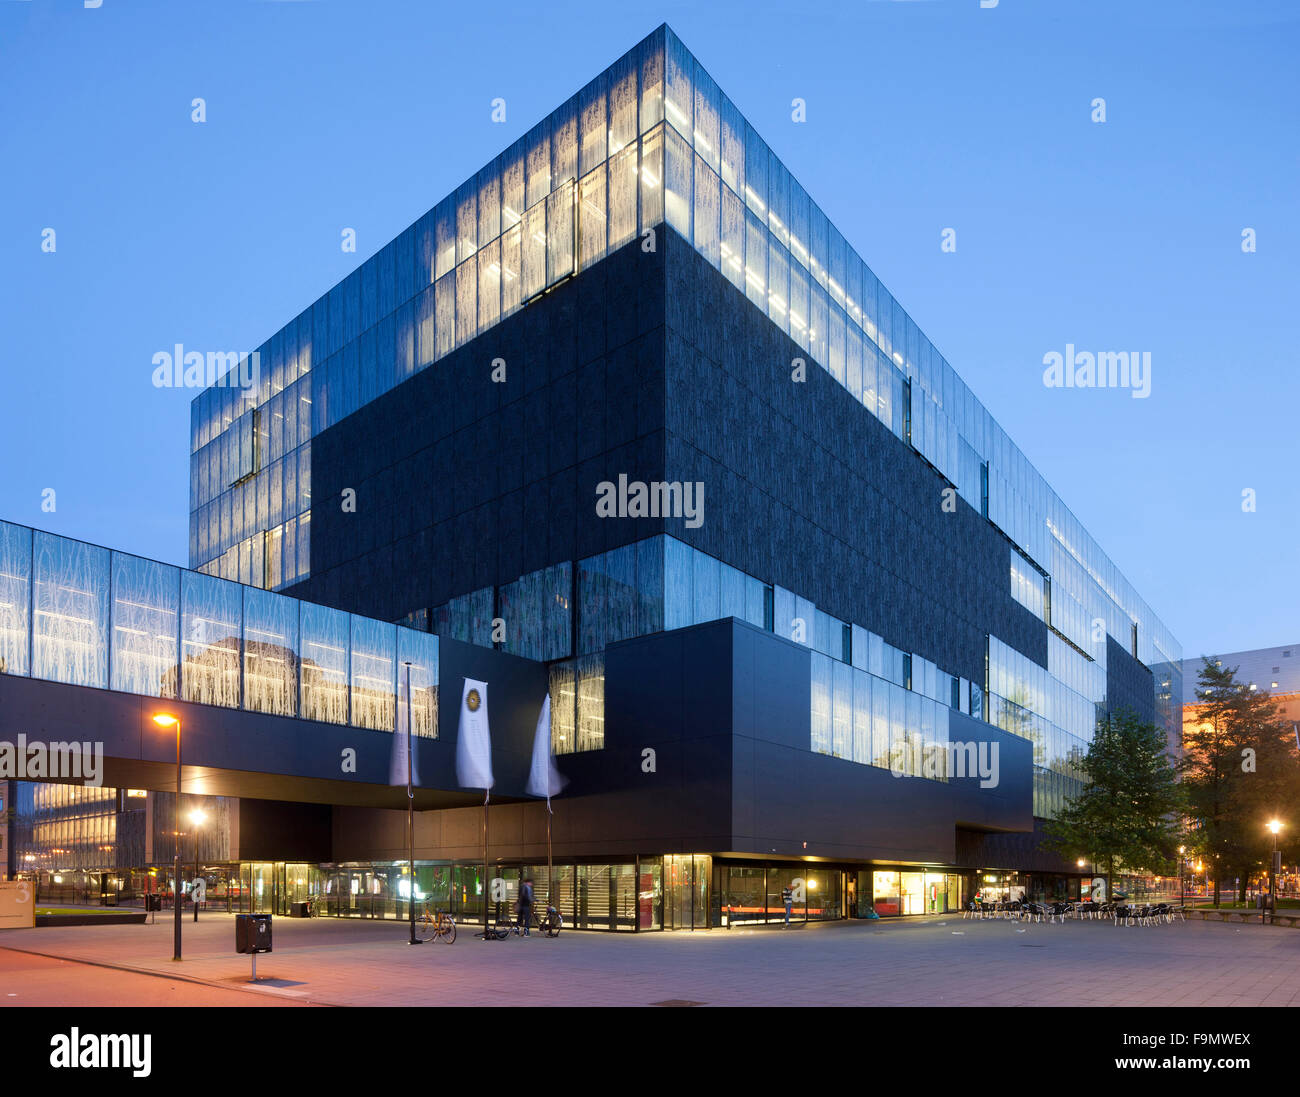 University Library Utrecht The Exterior Of Building View At Night With Entrance